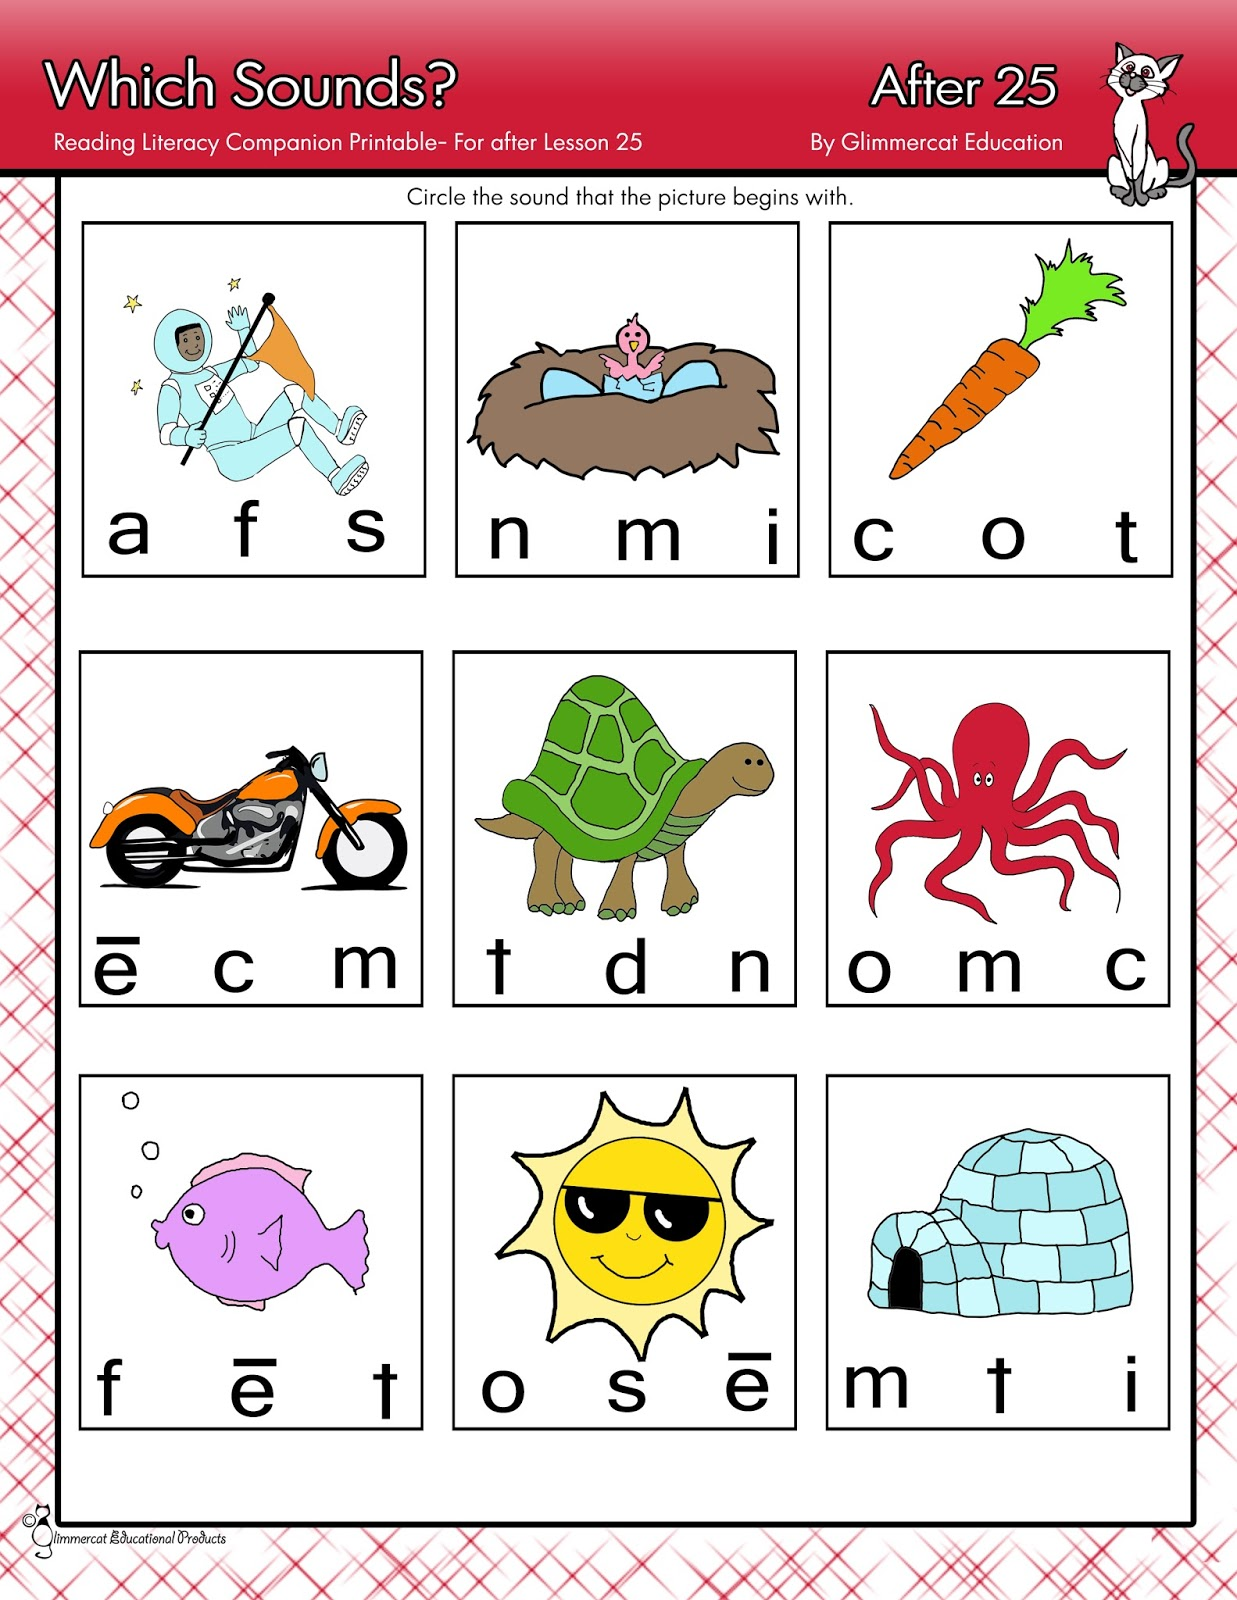 worksheet Teach Your Child To Read In 100 Easy Lessons Worksheets glimmercat supplemental activities for teach your child to read in 100 easy lessons